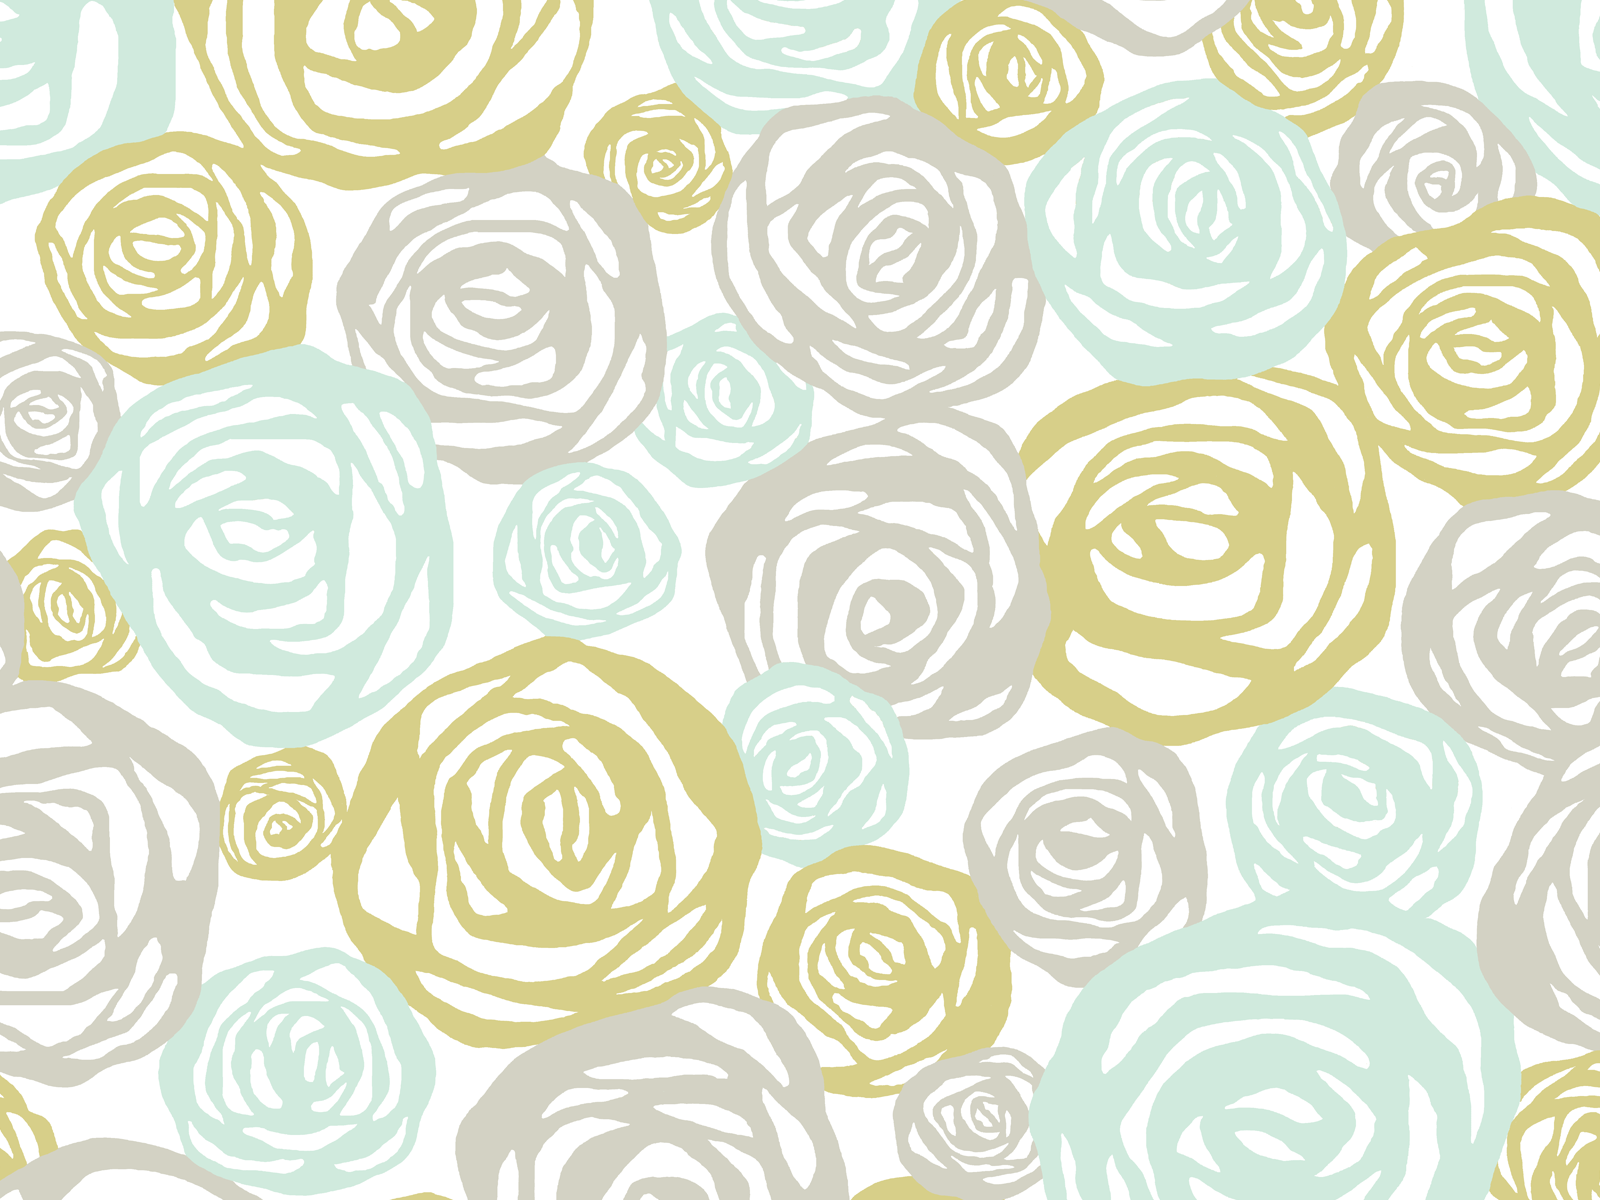 Jolisylvie: Preppy Backgrounds